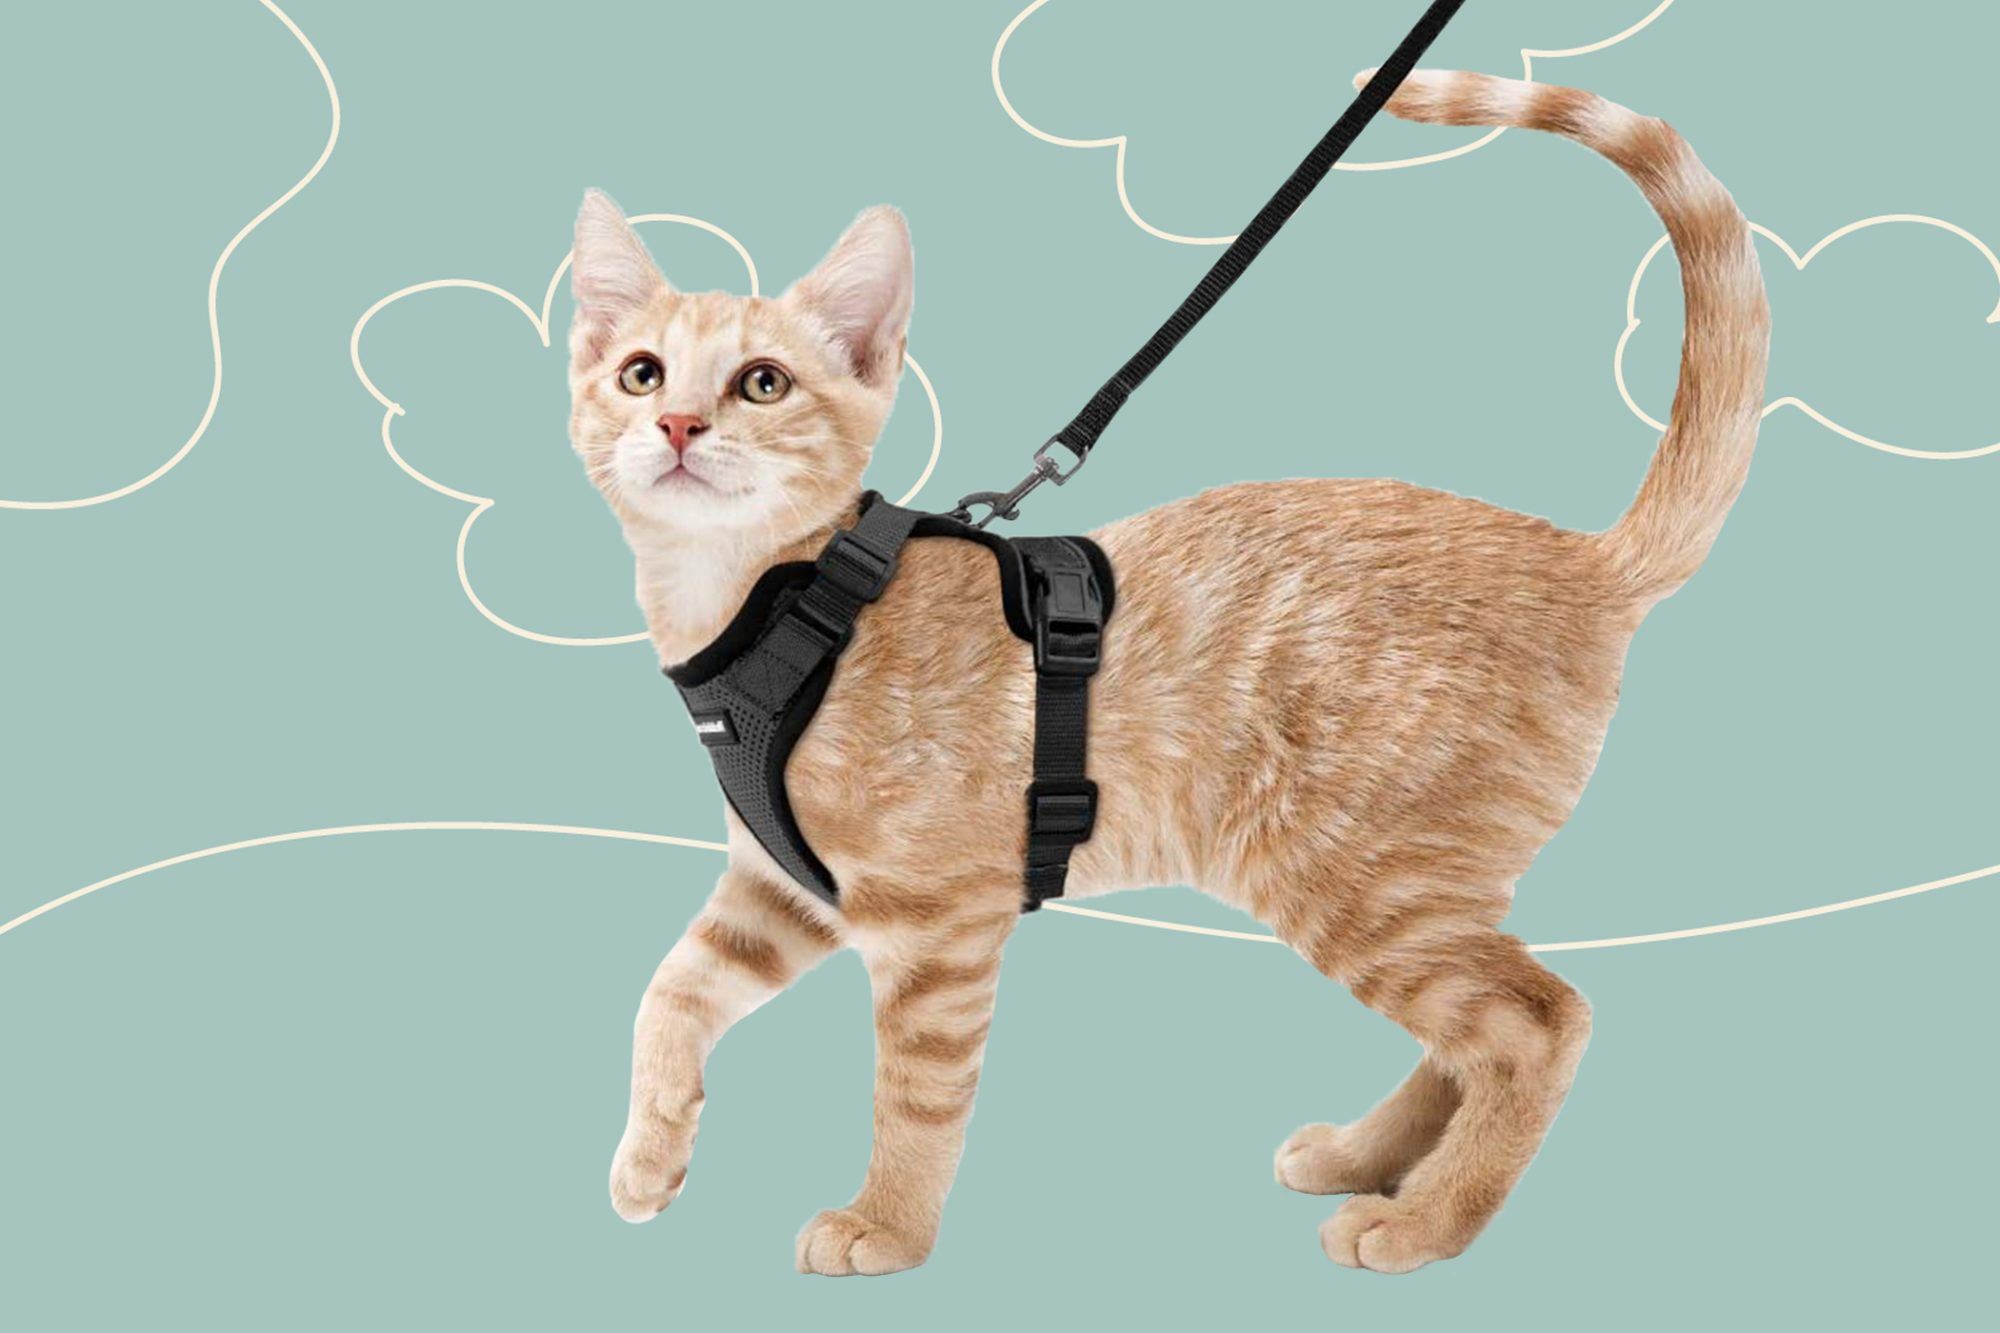 cat wearing harness and taking a walk